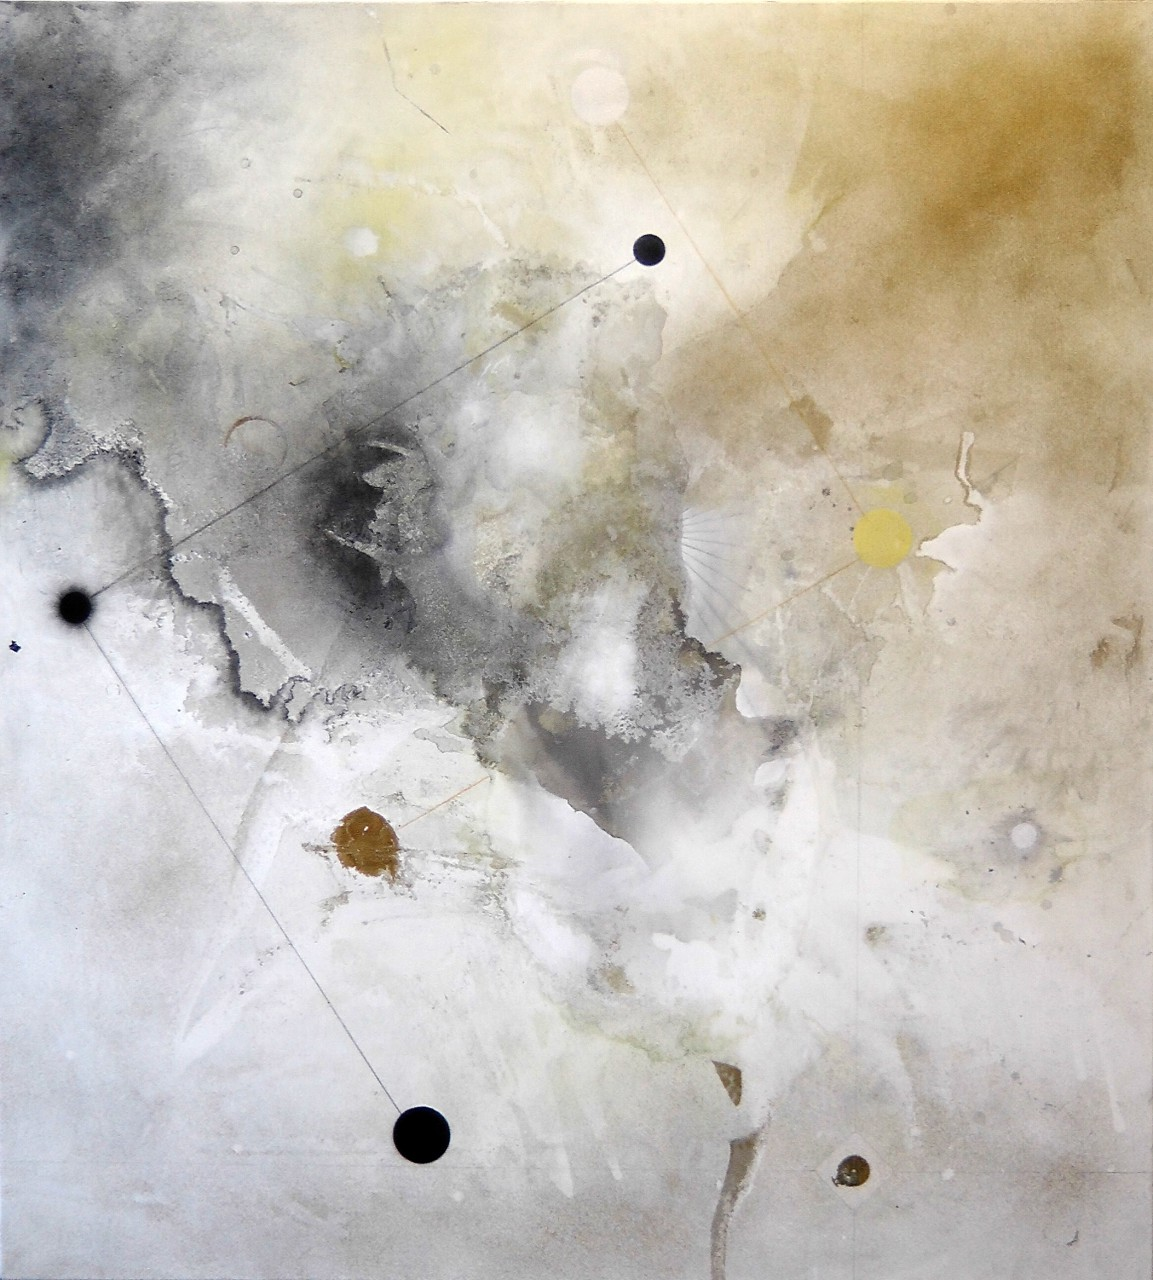 Prima Materia, mixed media on canvas, 170x150 cm, 2015